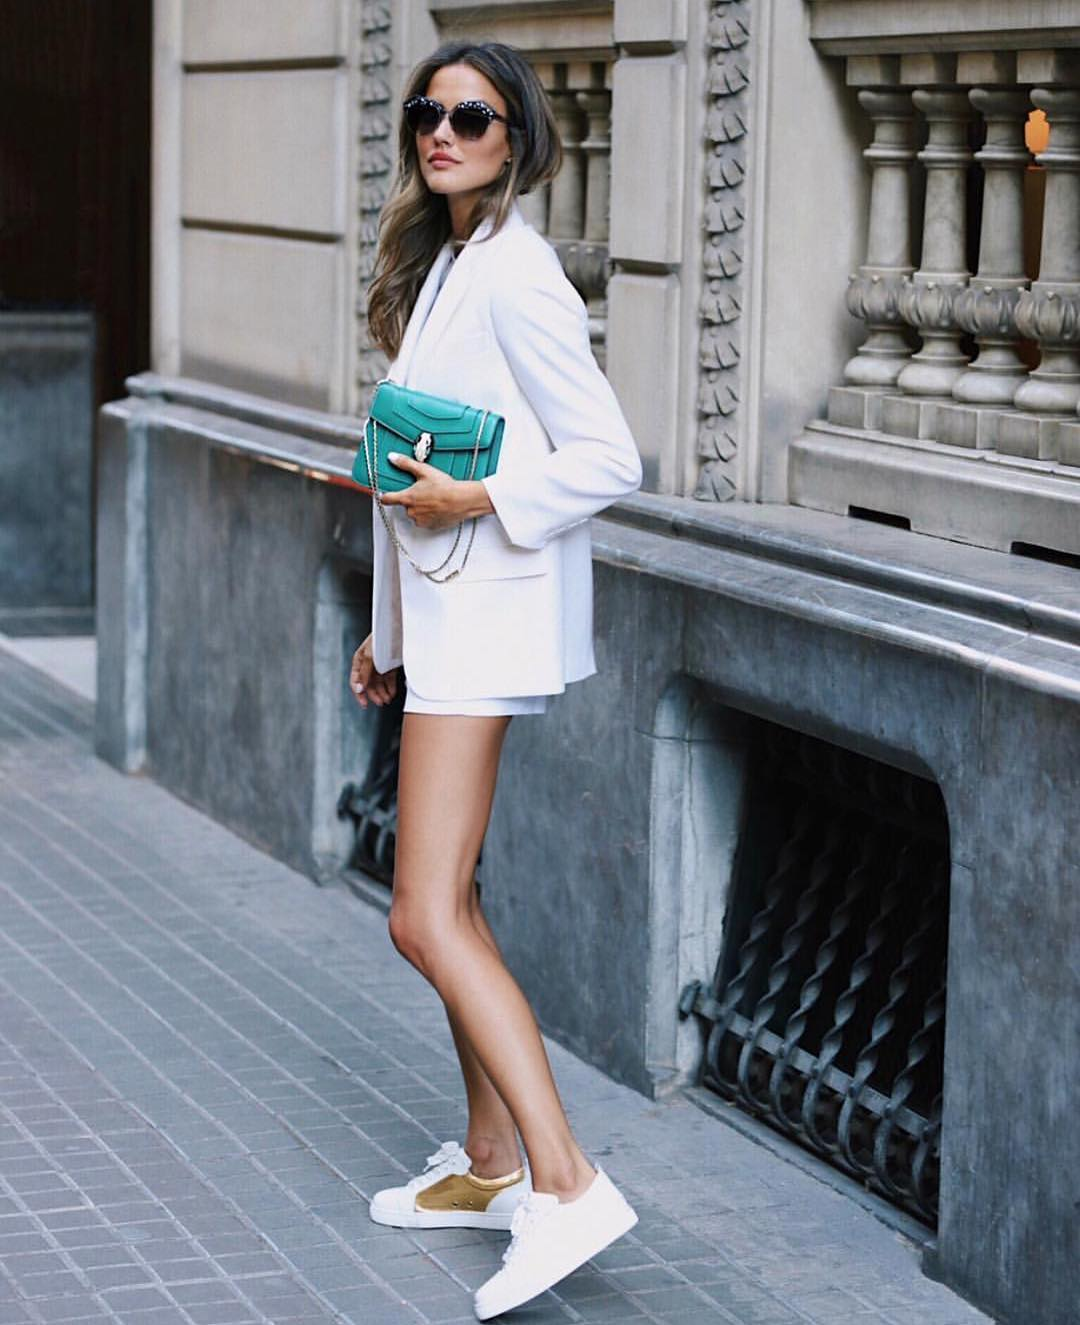 All White Look For Summer: Blazer, Shorts And Sneakers 2019